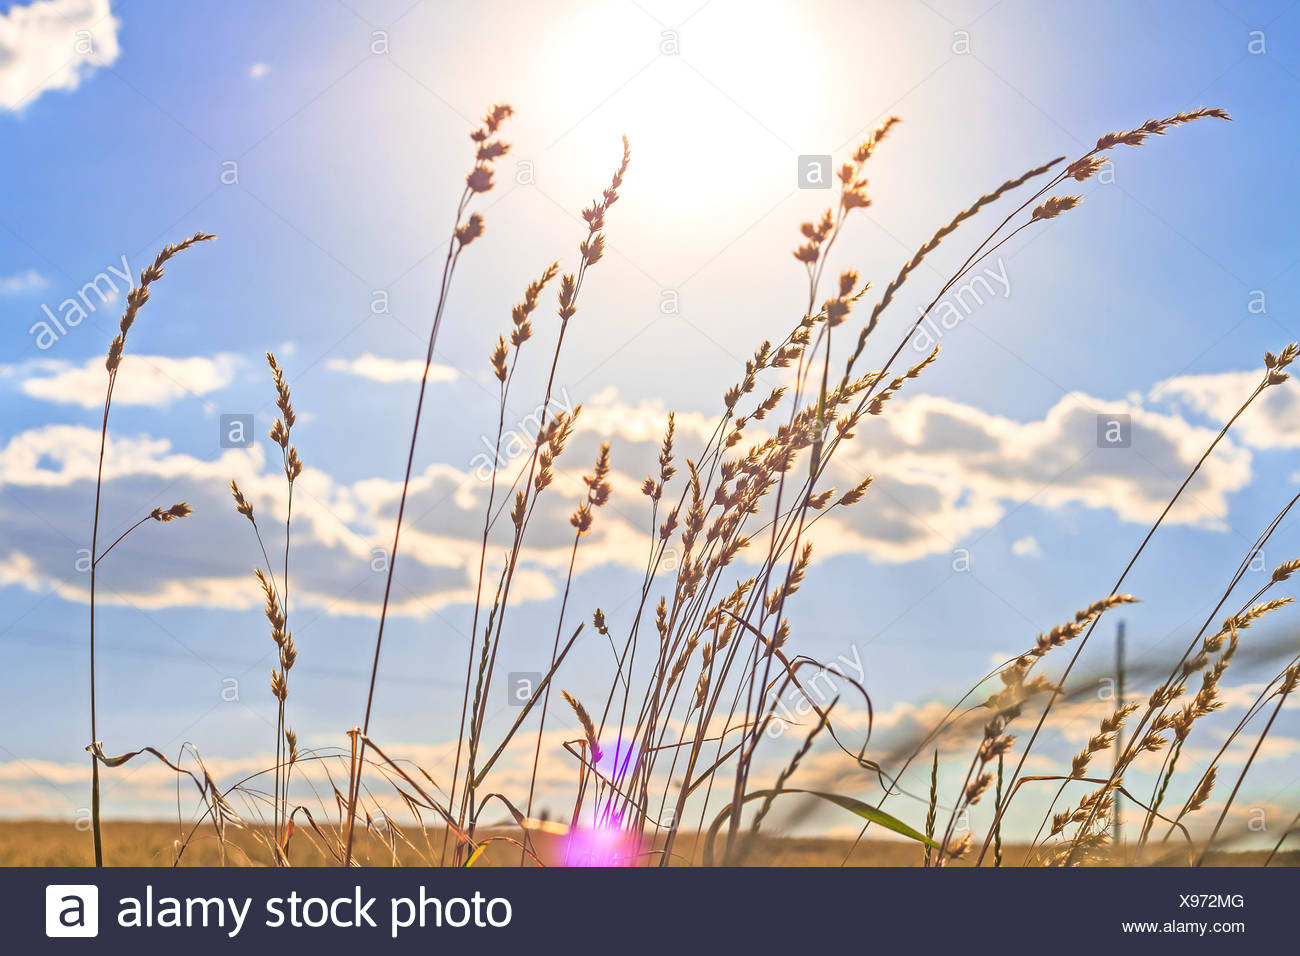 The stems of grass - Stock Image